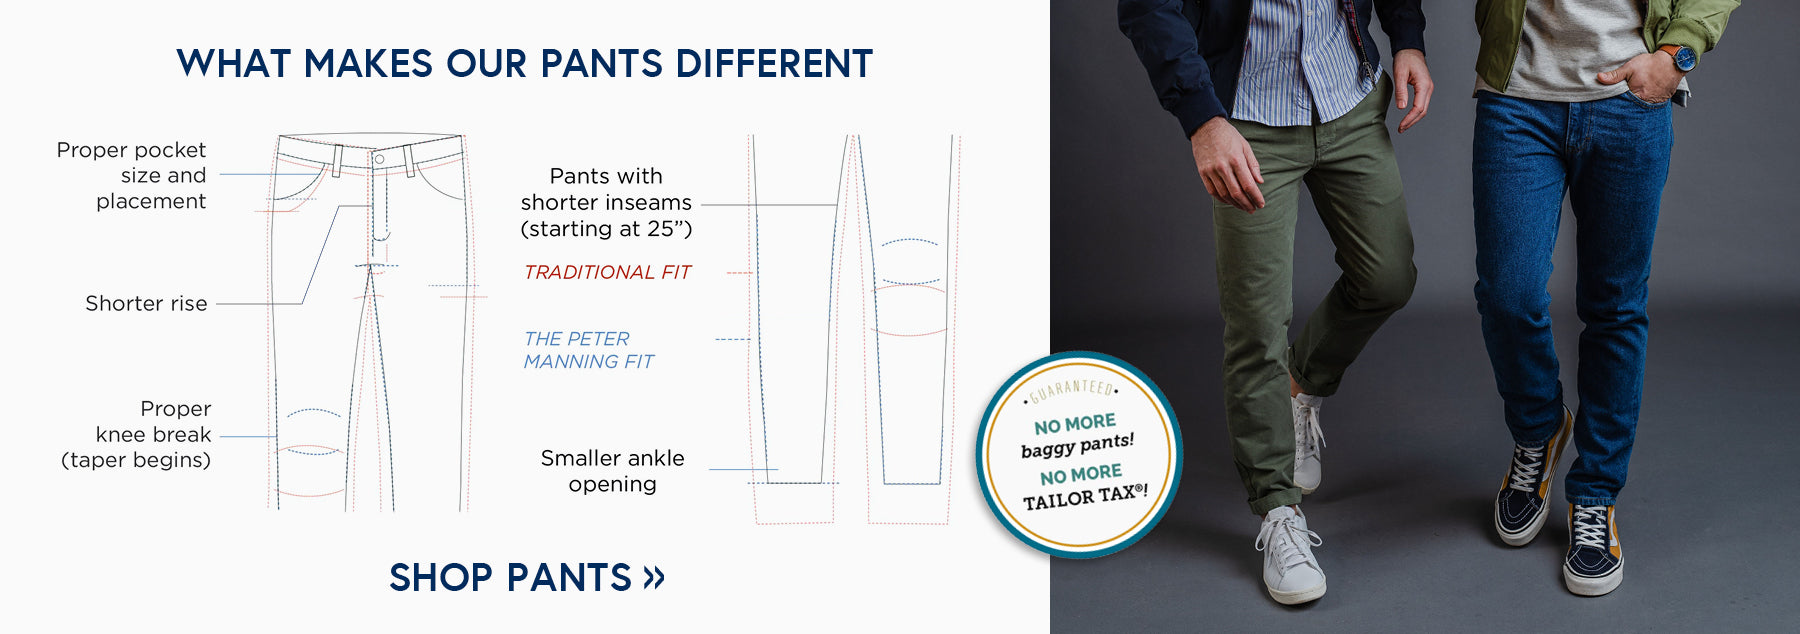 Find out what makes our pants different - Shorter Inseams, Shorter Rise, Proper Pocket Size -  Shop Pants